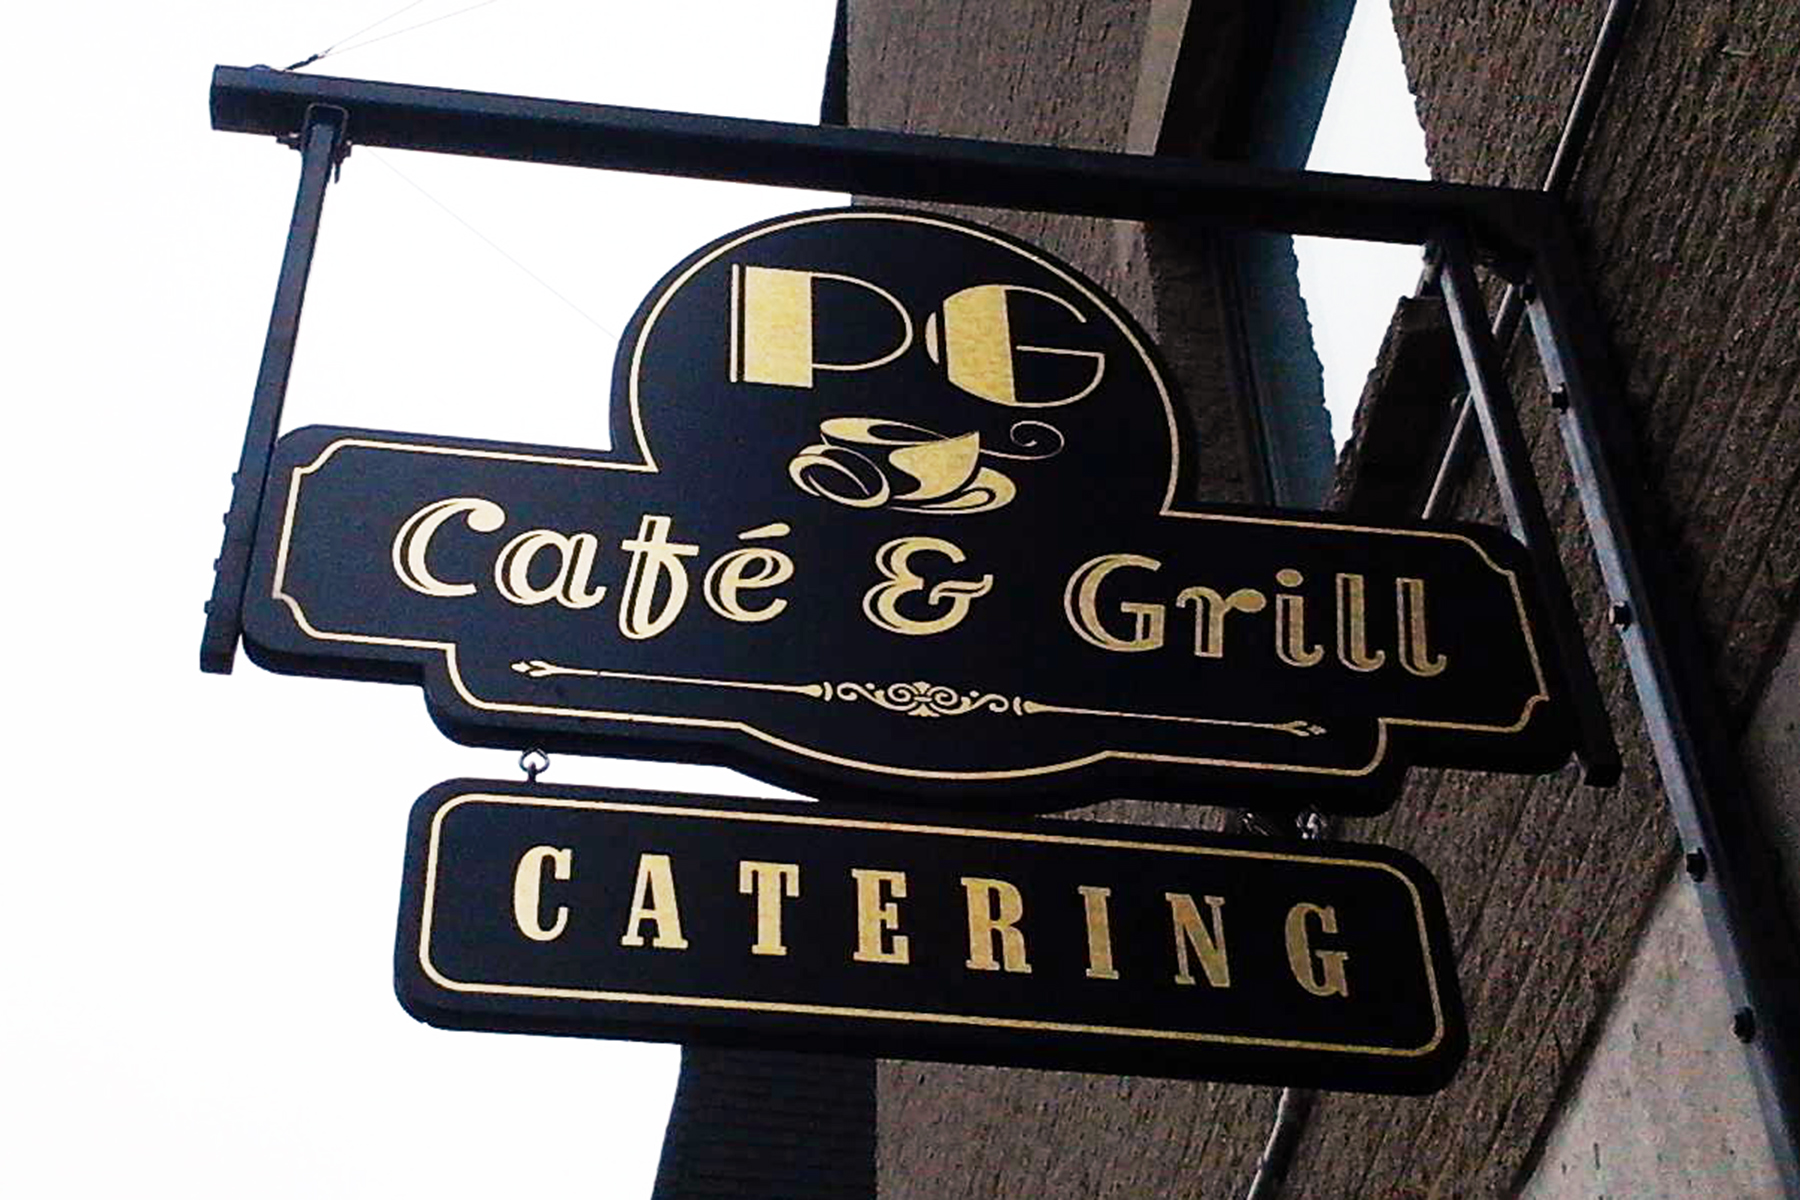 PG's Cafe & Grill